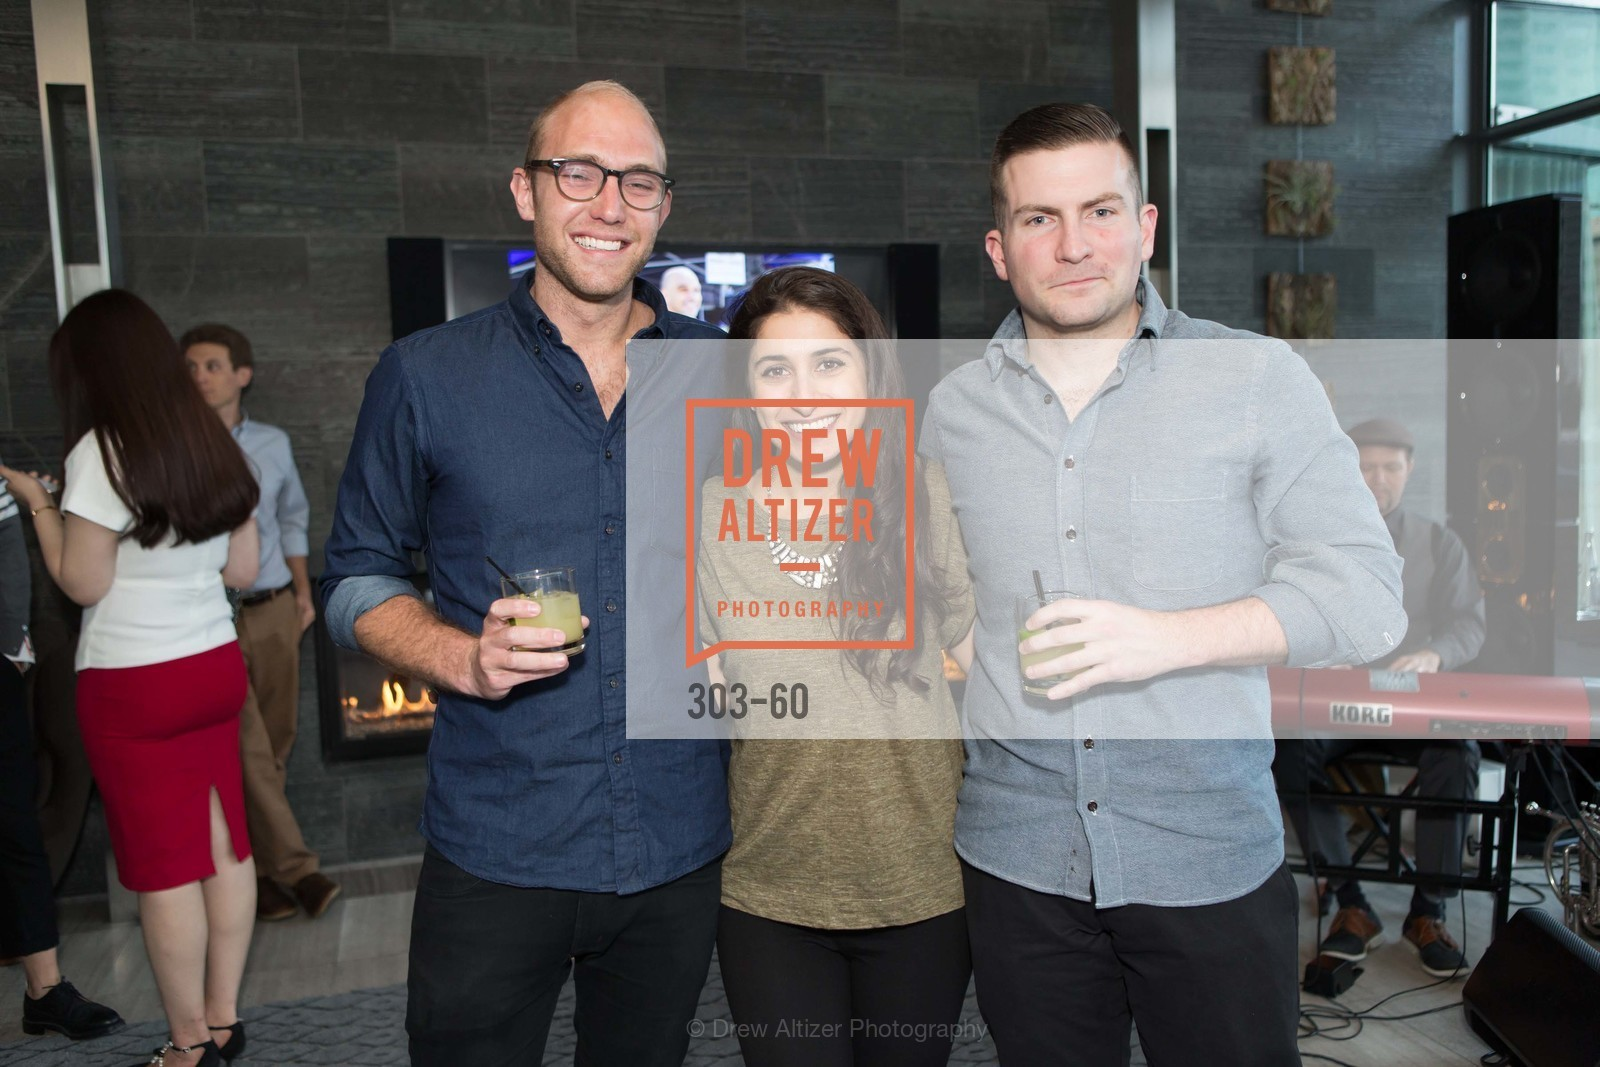 Spencer Ringkas, Sherry Ramatian, Matt Urns, MR PORTER Celebrate The San Francisco Issue of The Journal, The Battery Rooftop - The Battery SF, April 23rd, 2015,Drew Altizer, Drew Altizer Photography, full-service agency, private events, San Francisco photographer, photographer california